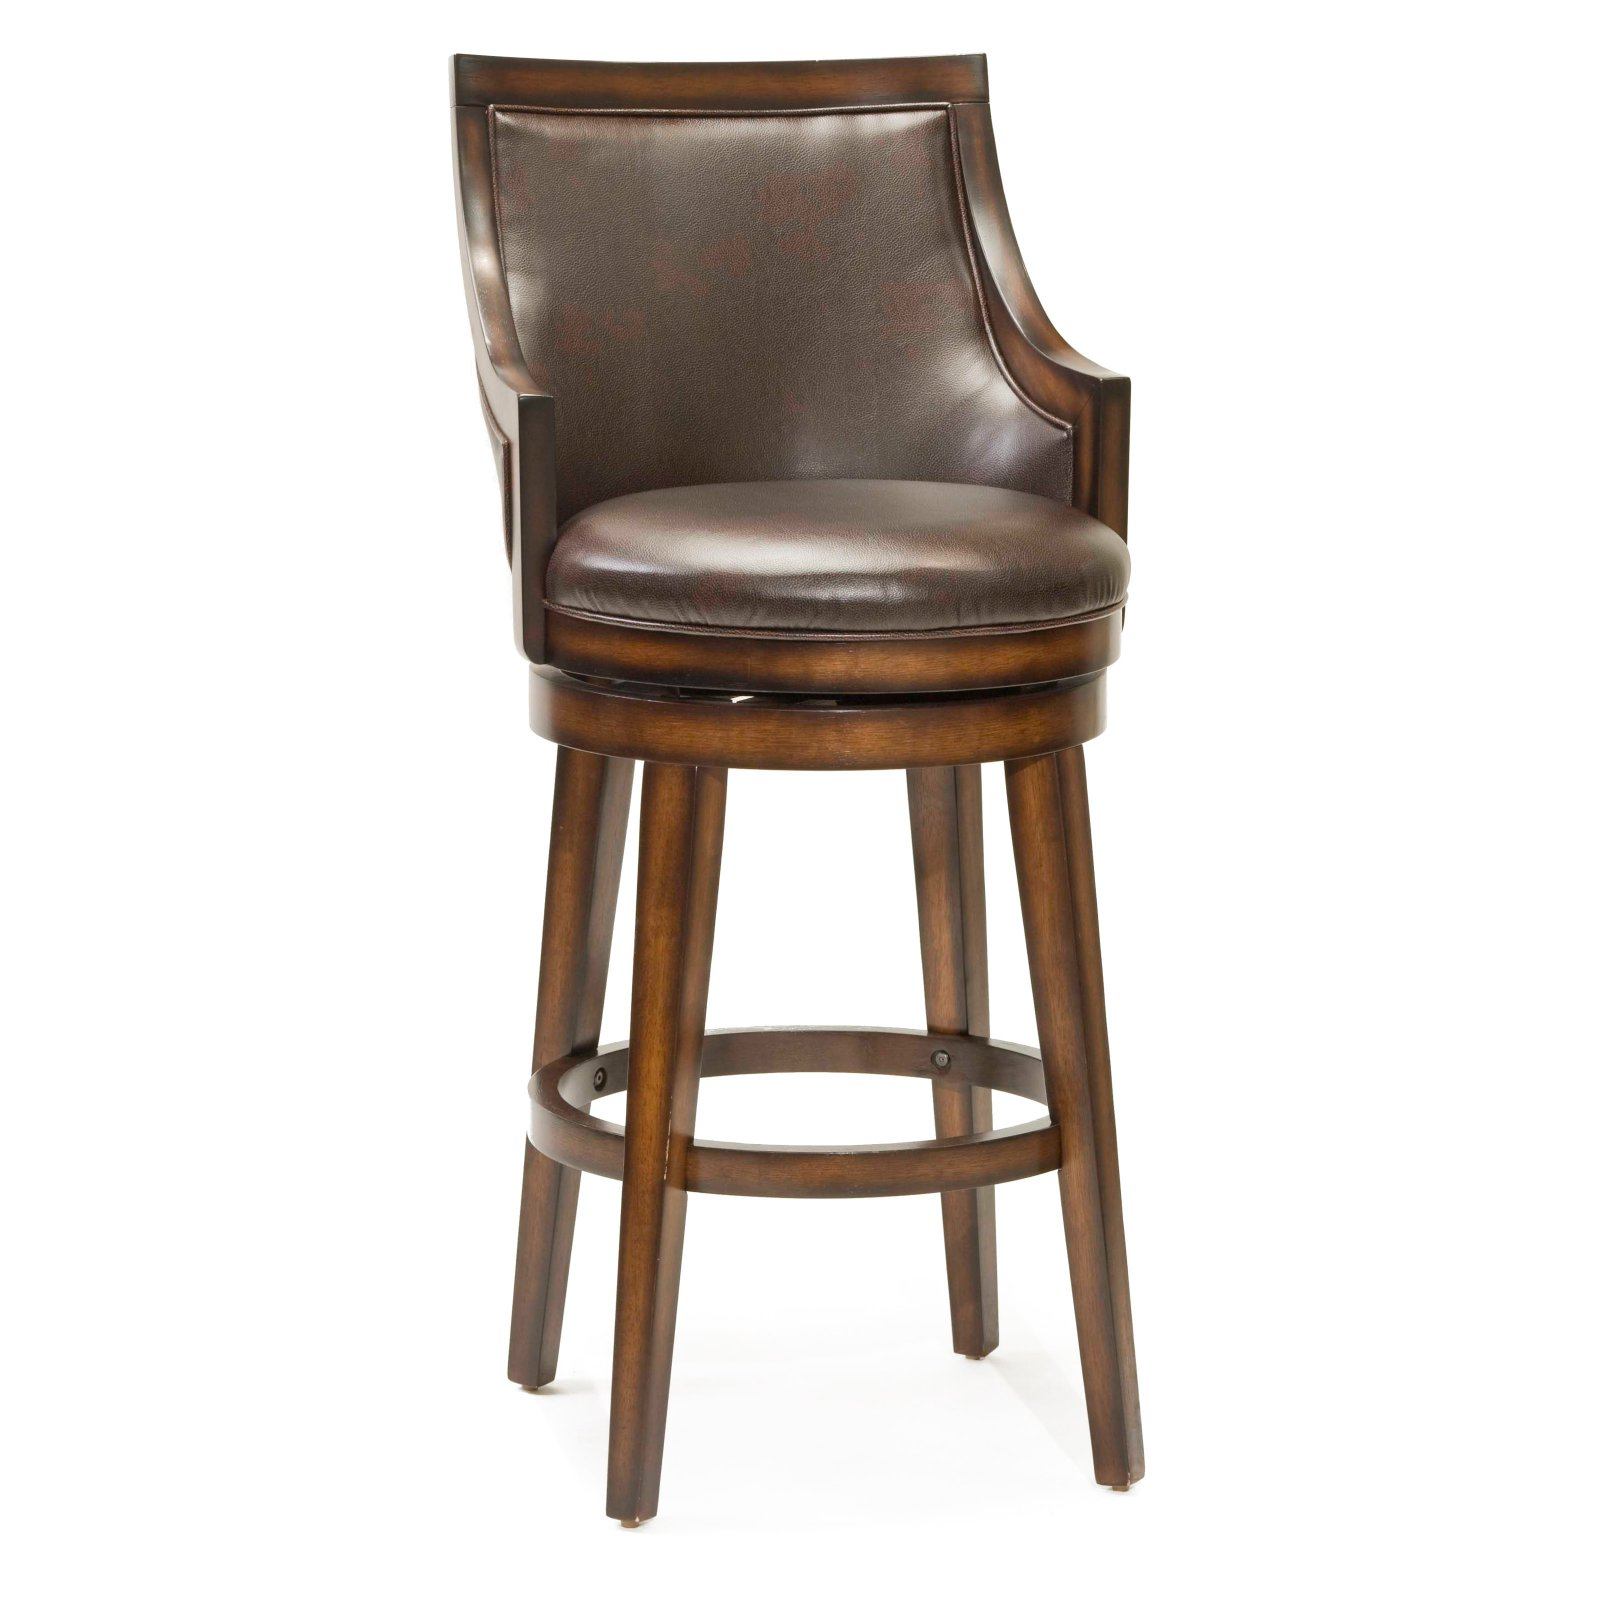 Hillsdale Lyman 30.5 in. Swivel Bar Stool